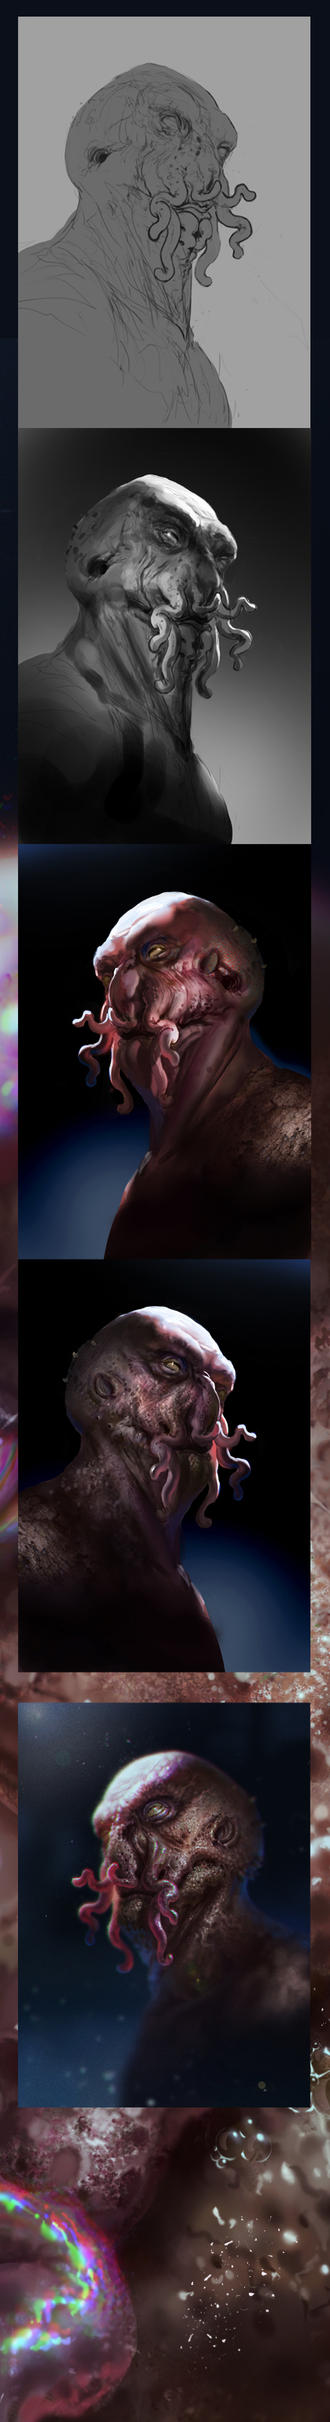 Dr. Zoidberg process by Verehin